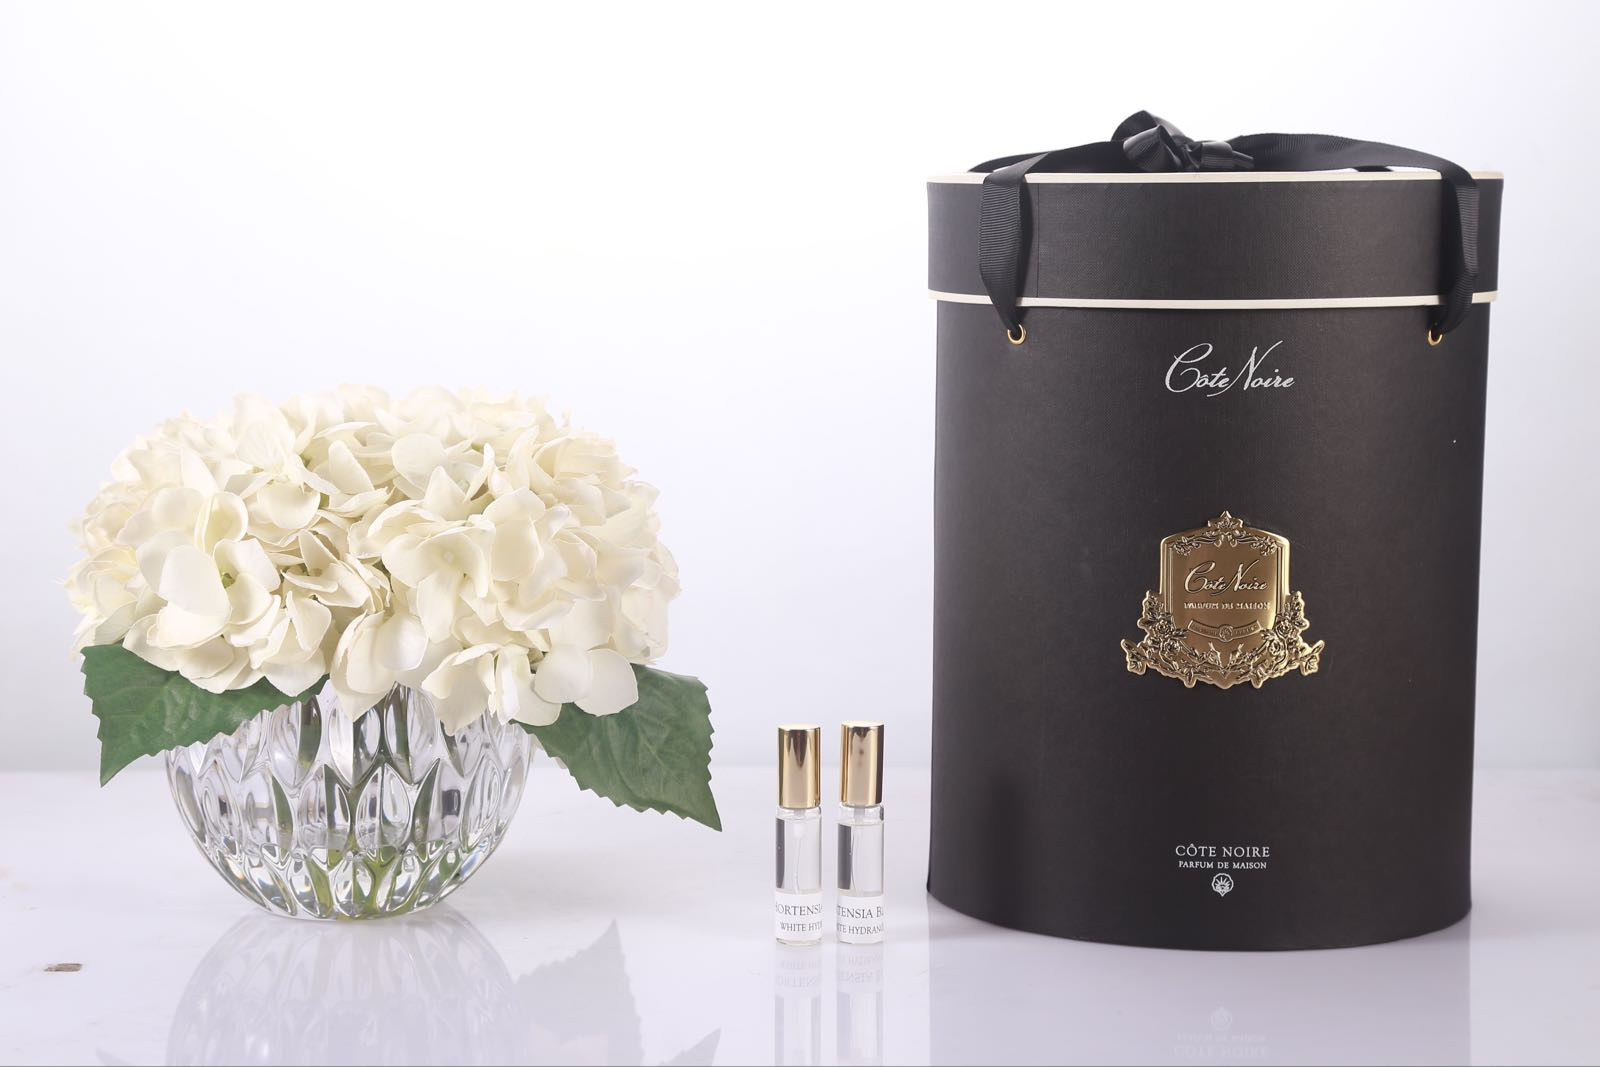 Cote noire white fragranced Hydrangea in crystal vase with hat box and fragrance